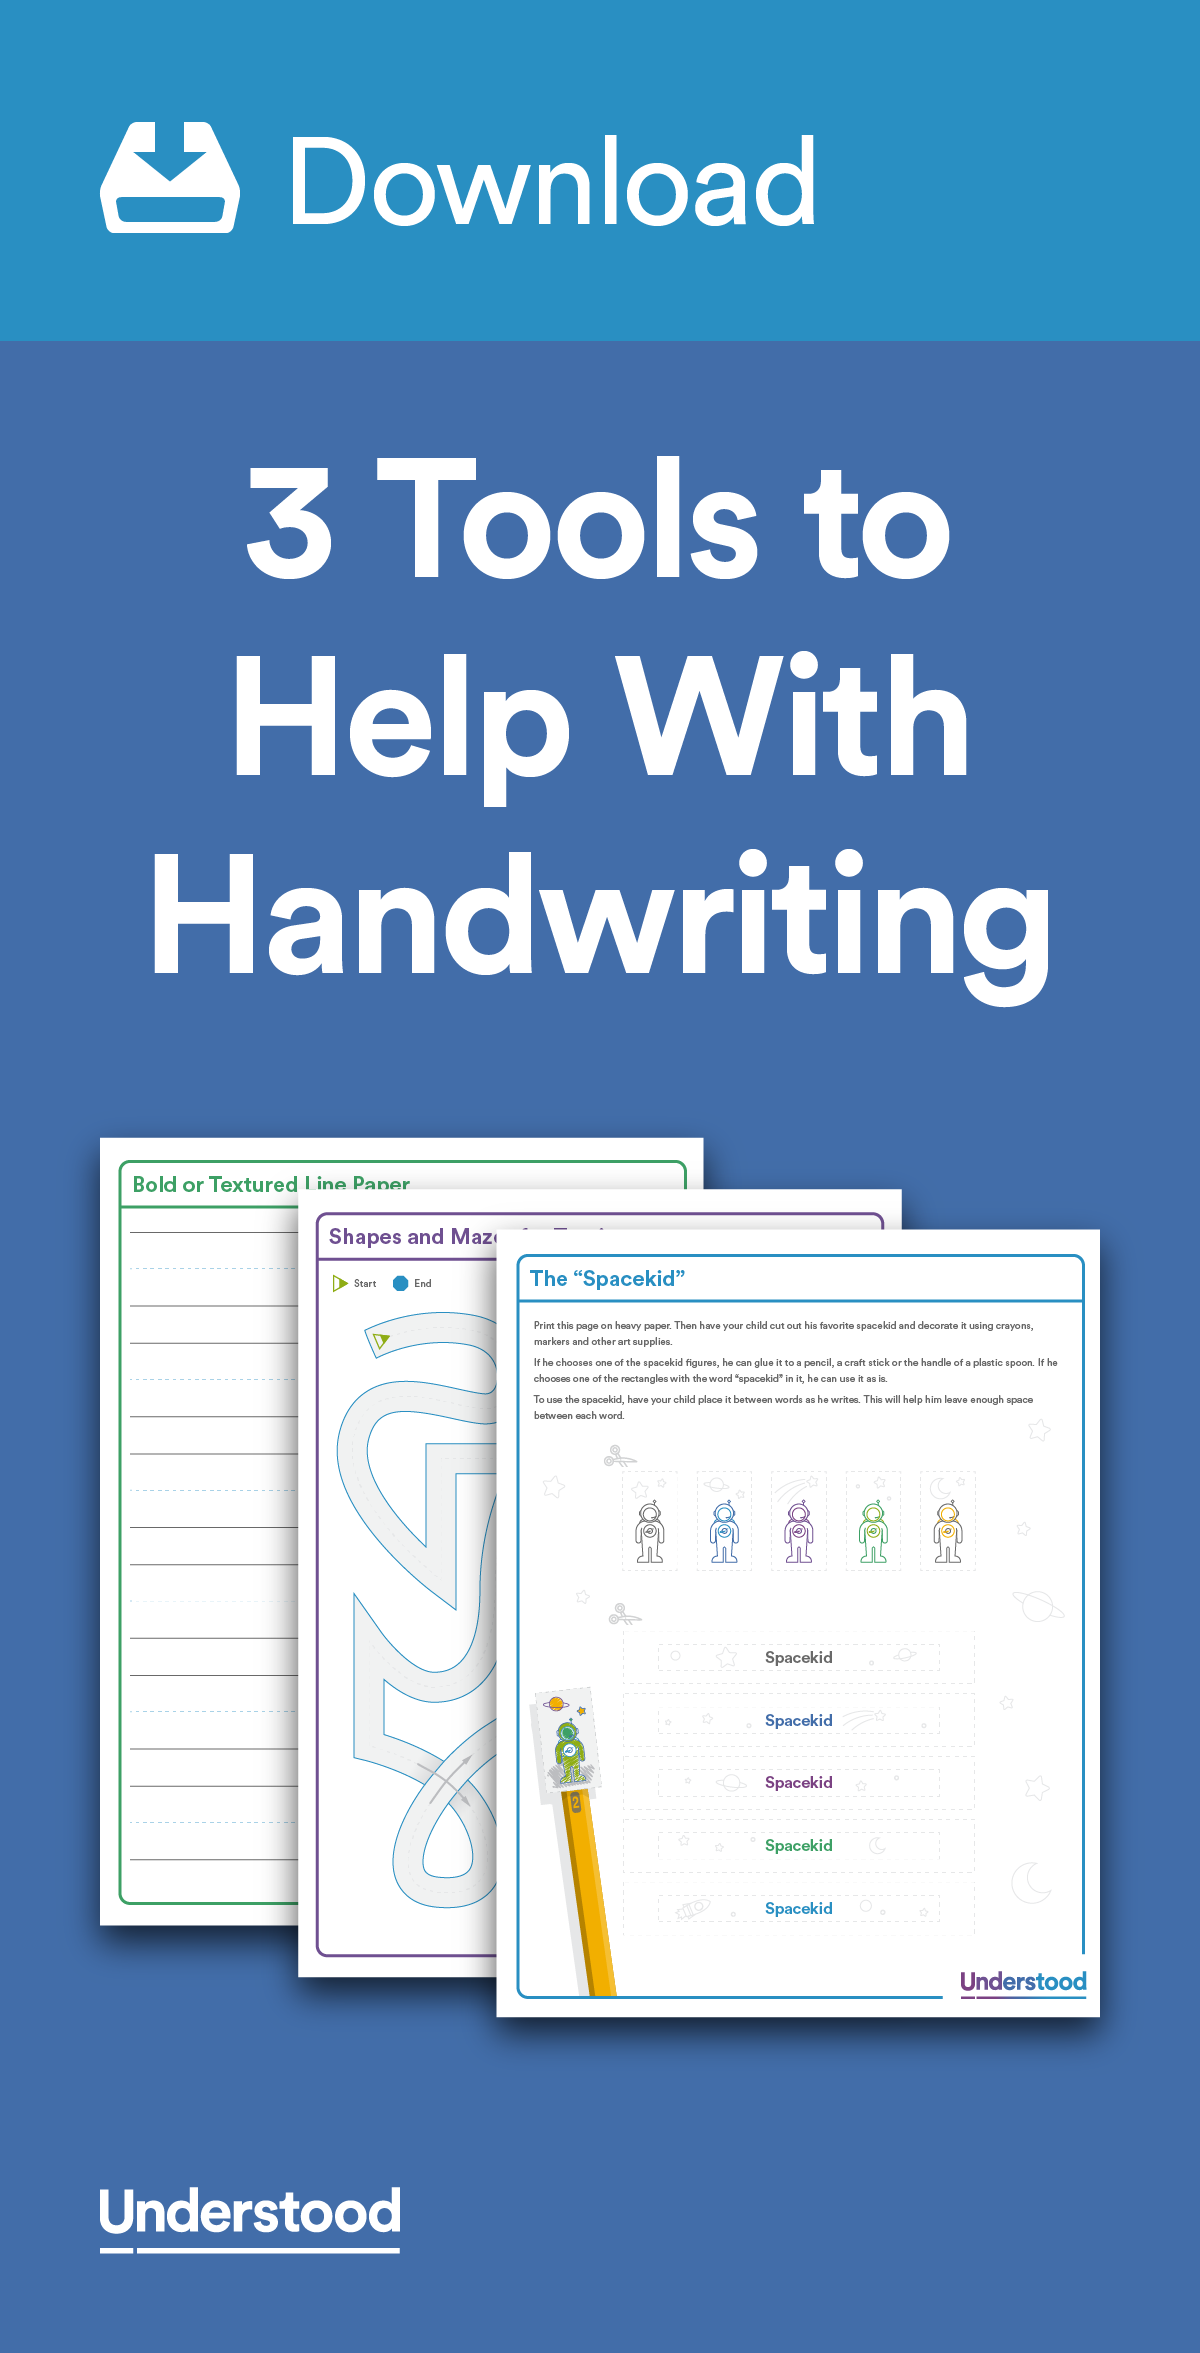 download tools to help with handwriting dyspraxia and motor skills handwriting activities. Black Bedroom Furniture Sets. Home Design Ideas